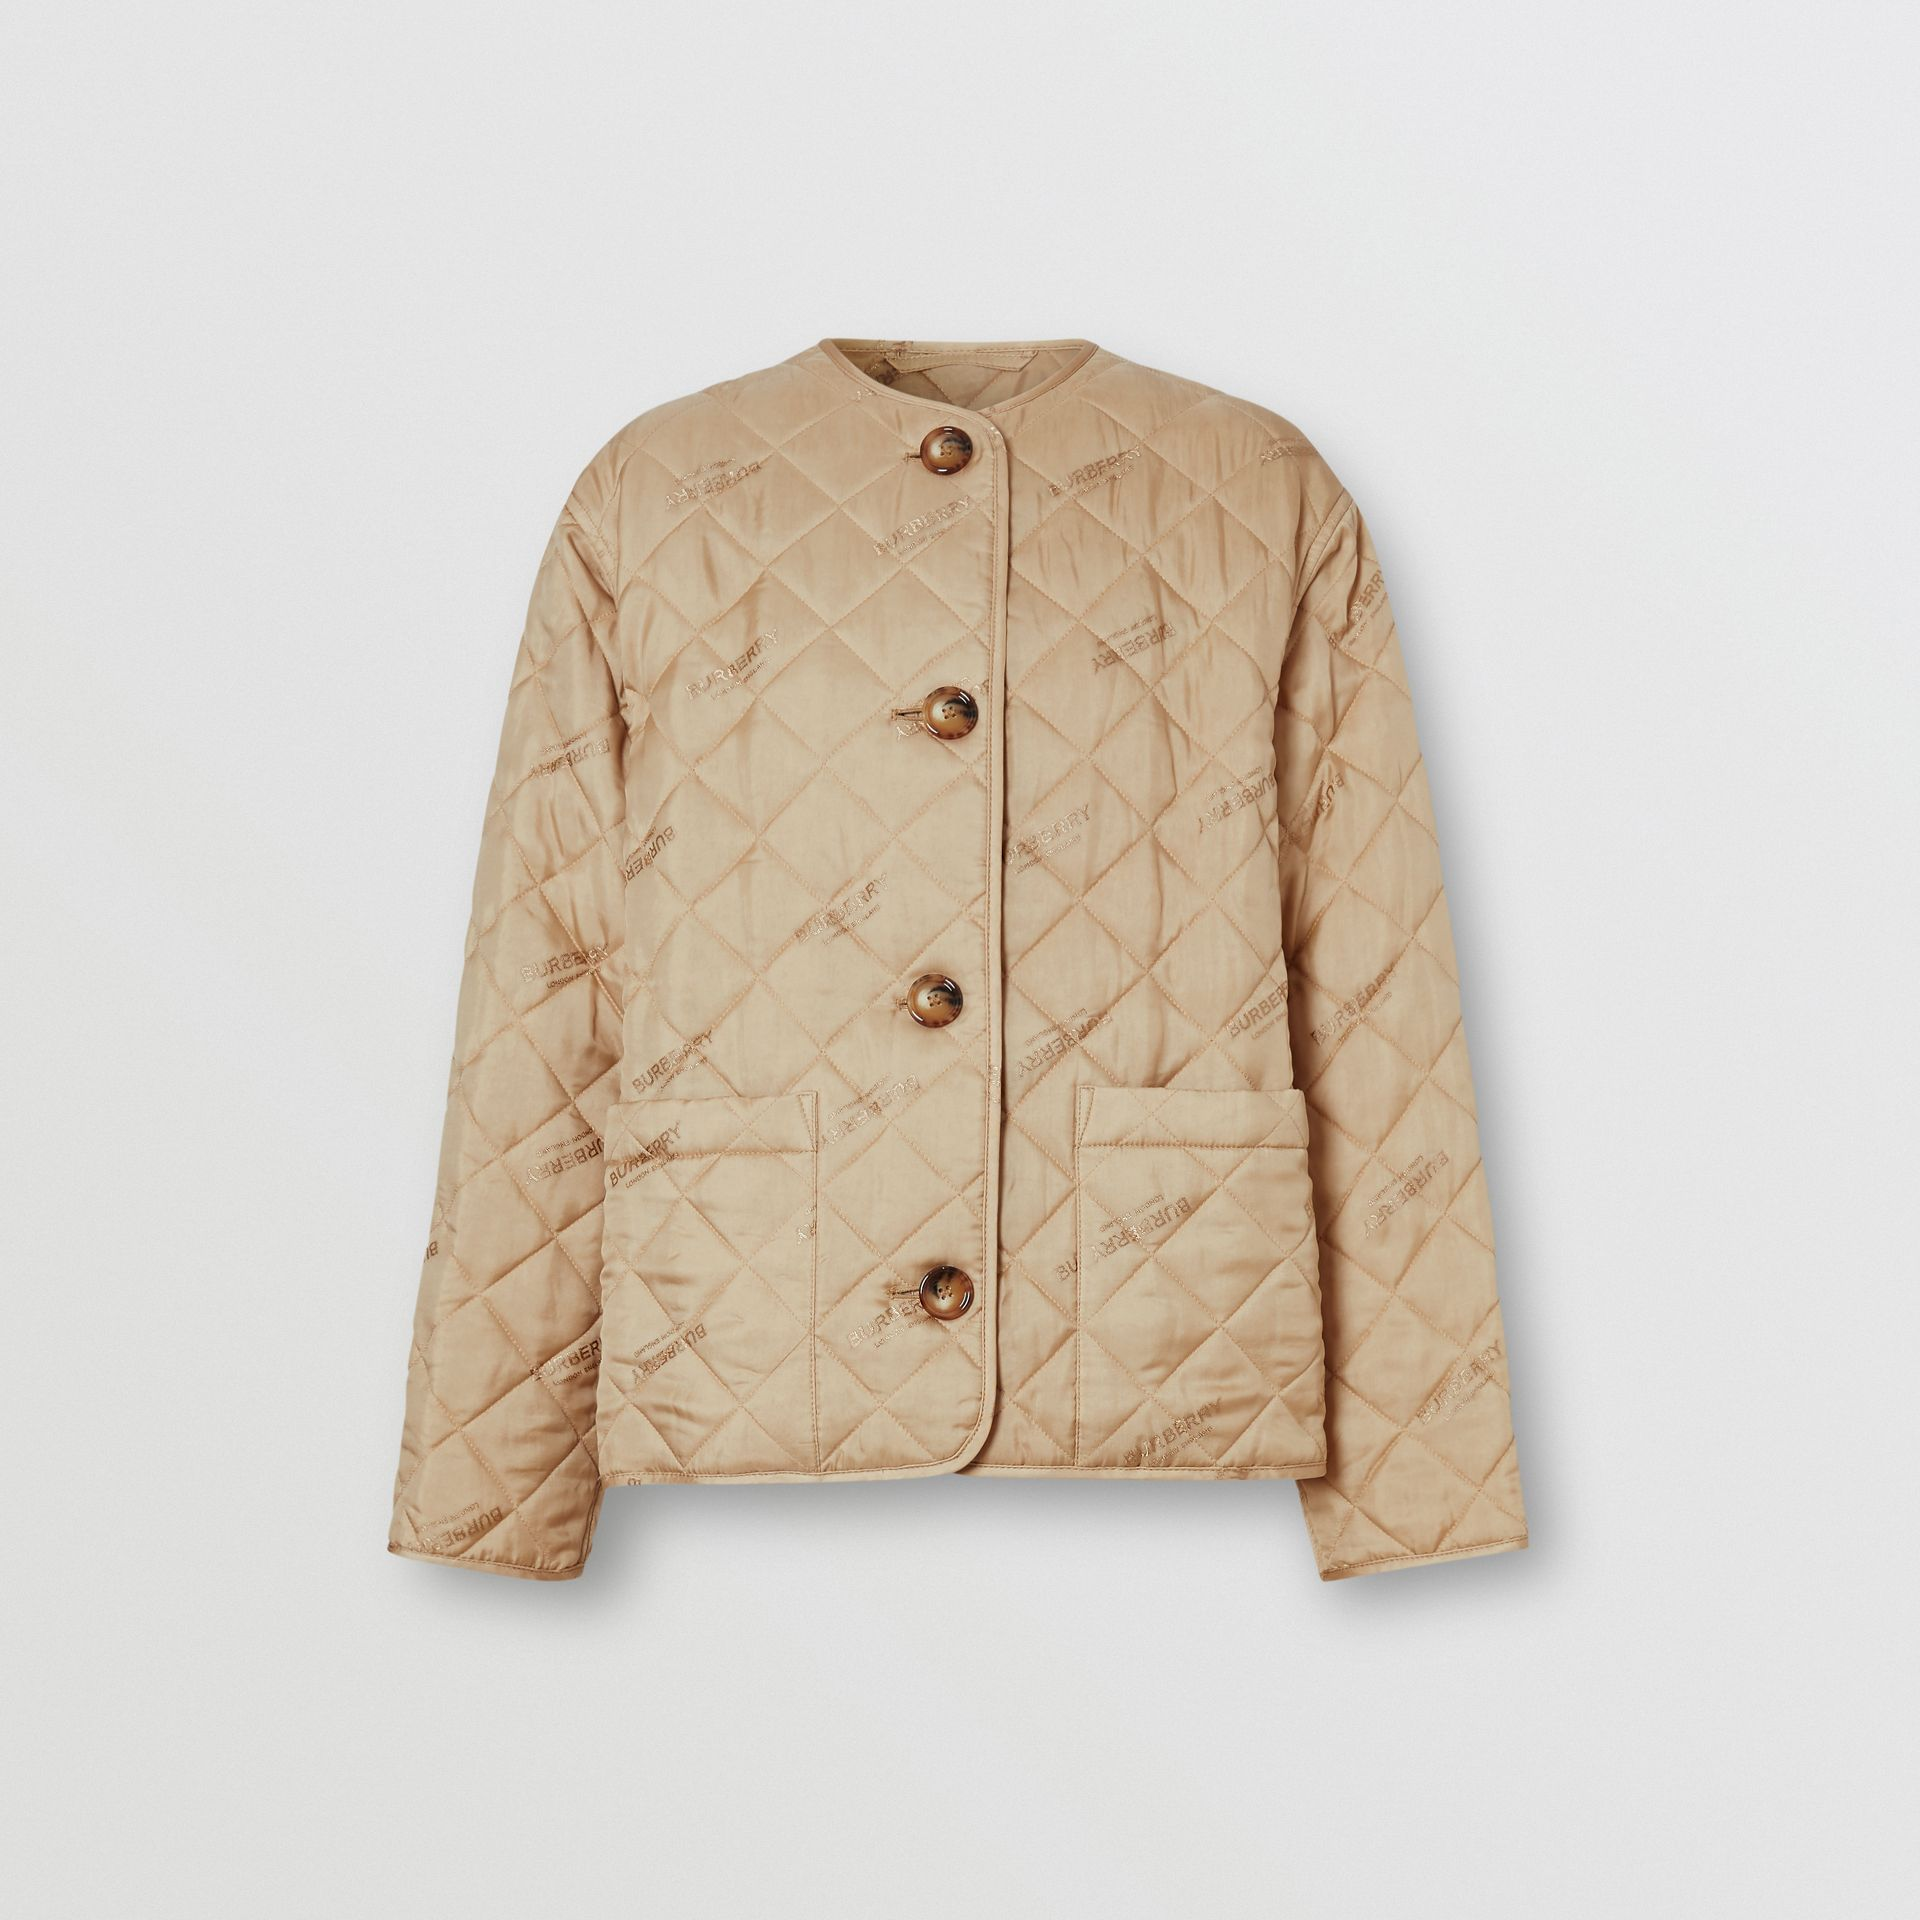 Logo Jacquard Diamond Quilted Jacket in Ecru - Women | Burberry Hong Kong S.A.R - gallery image 3